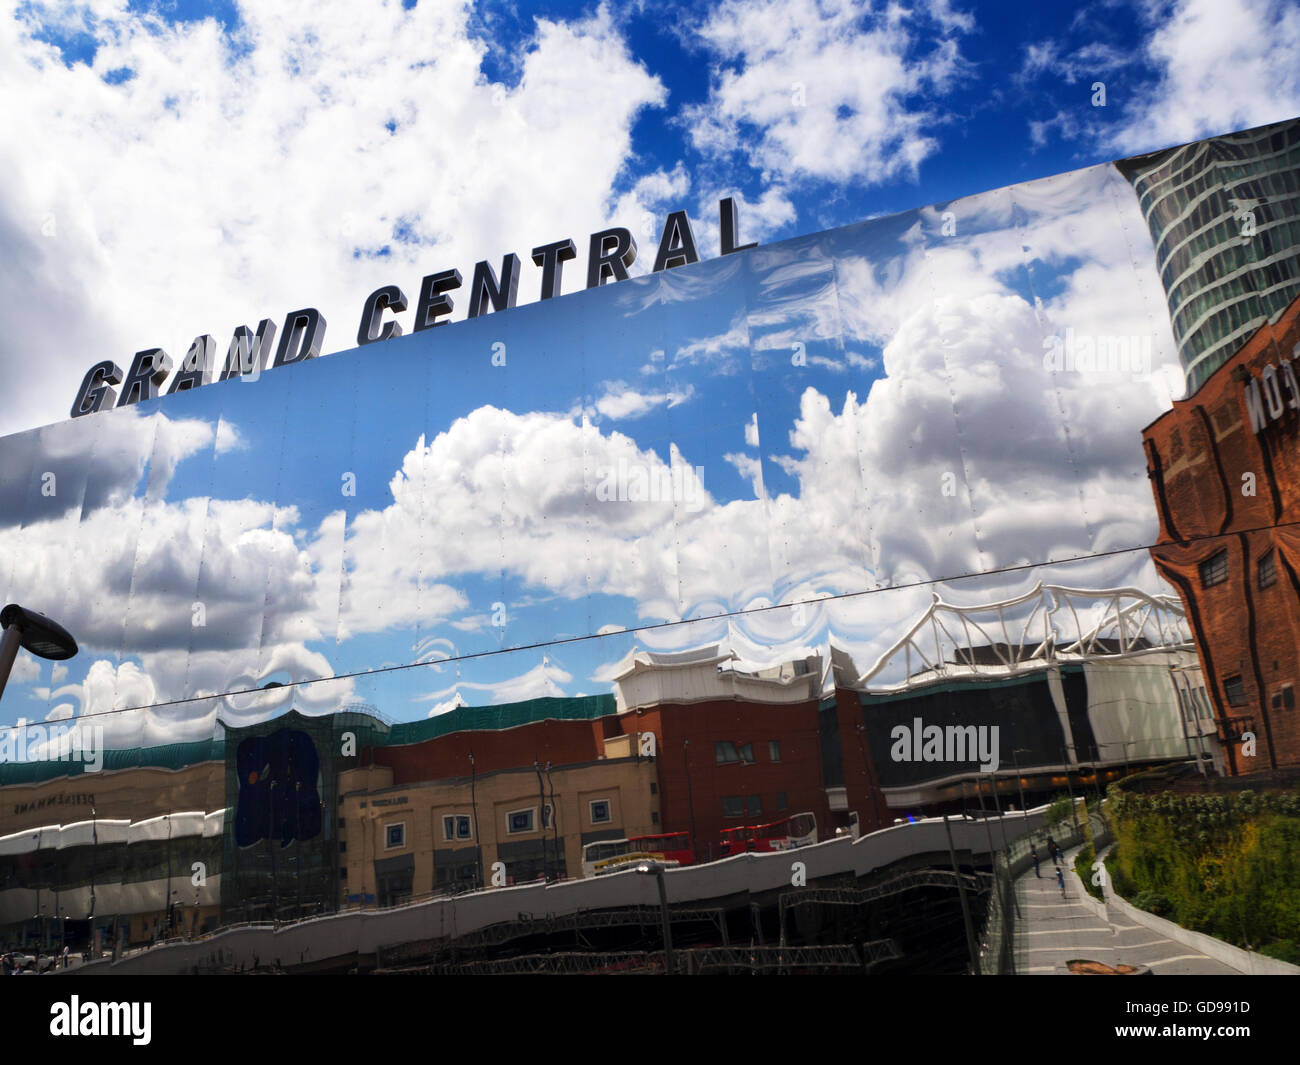 Reflections in the Grand Central Shopping Centre at New Street Station Birmingham West Midlands England - Stock Image